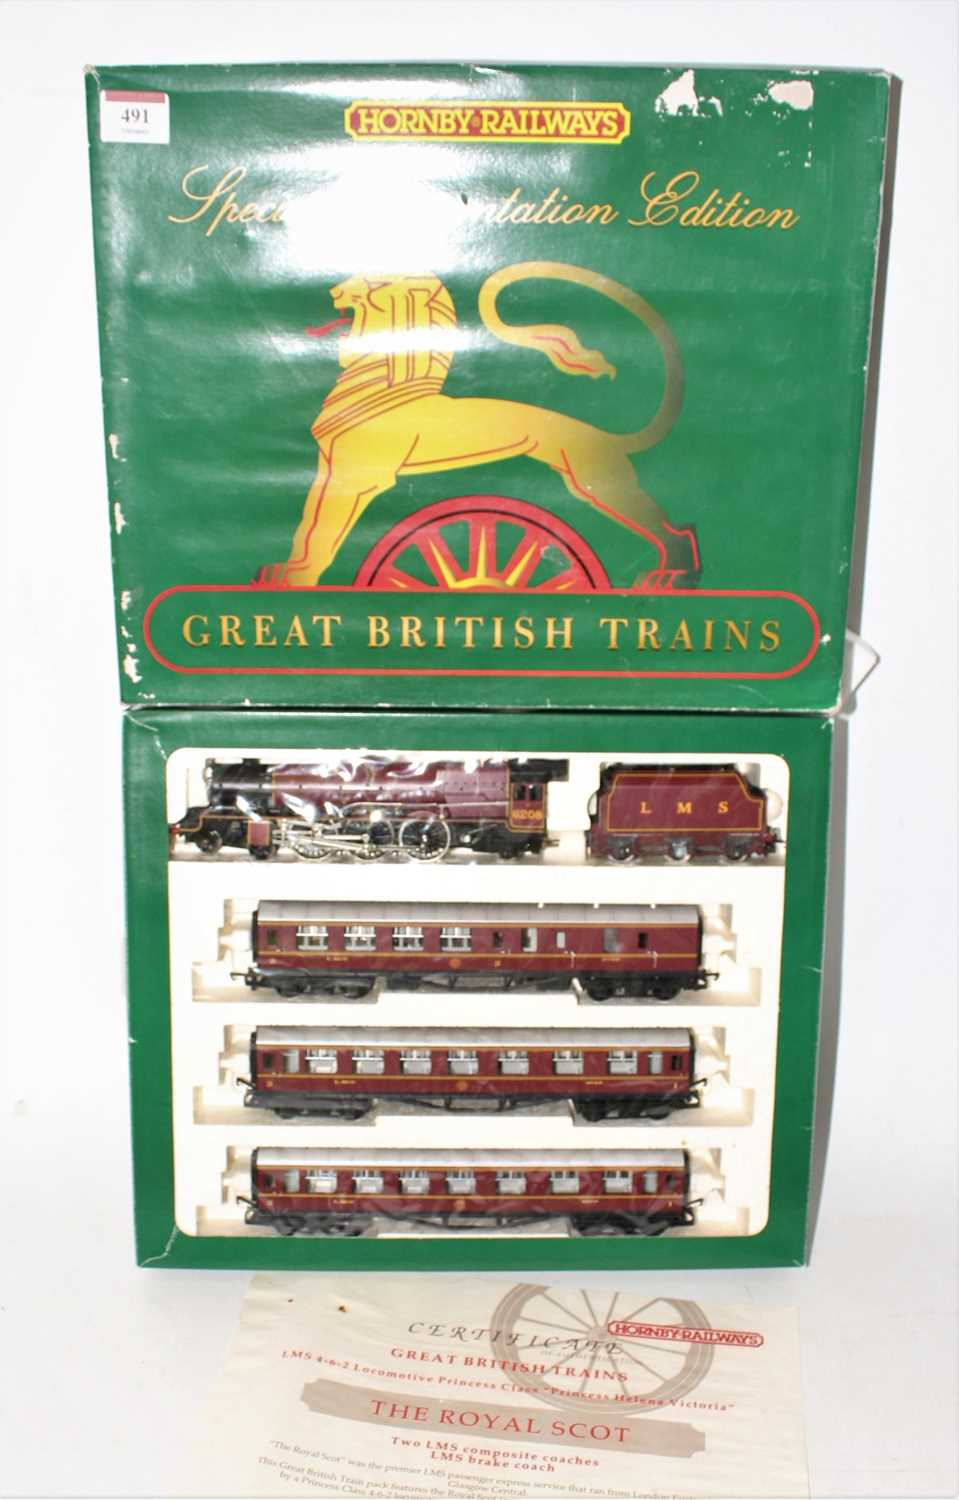 A Hornby Railways limited edition Princess Class Helena Victoria Royal Scot train pack, limited